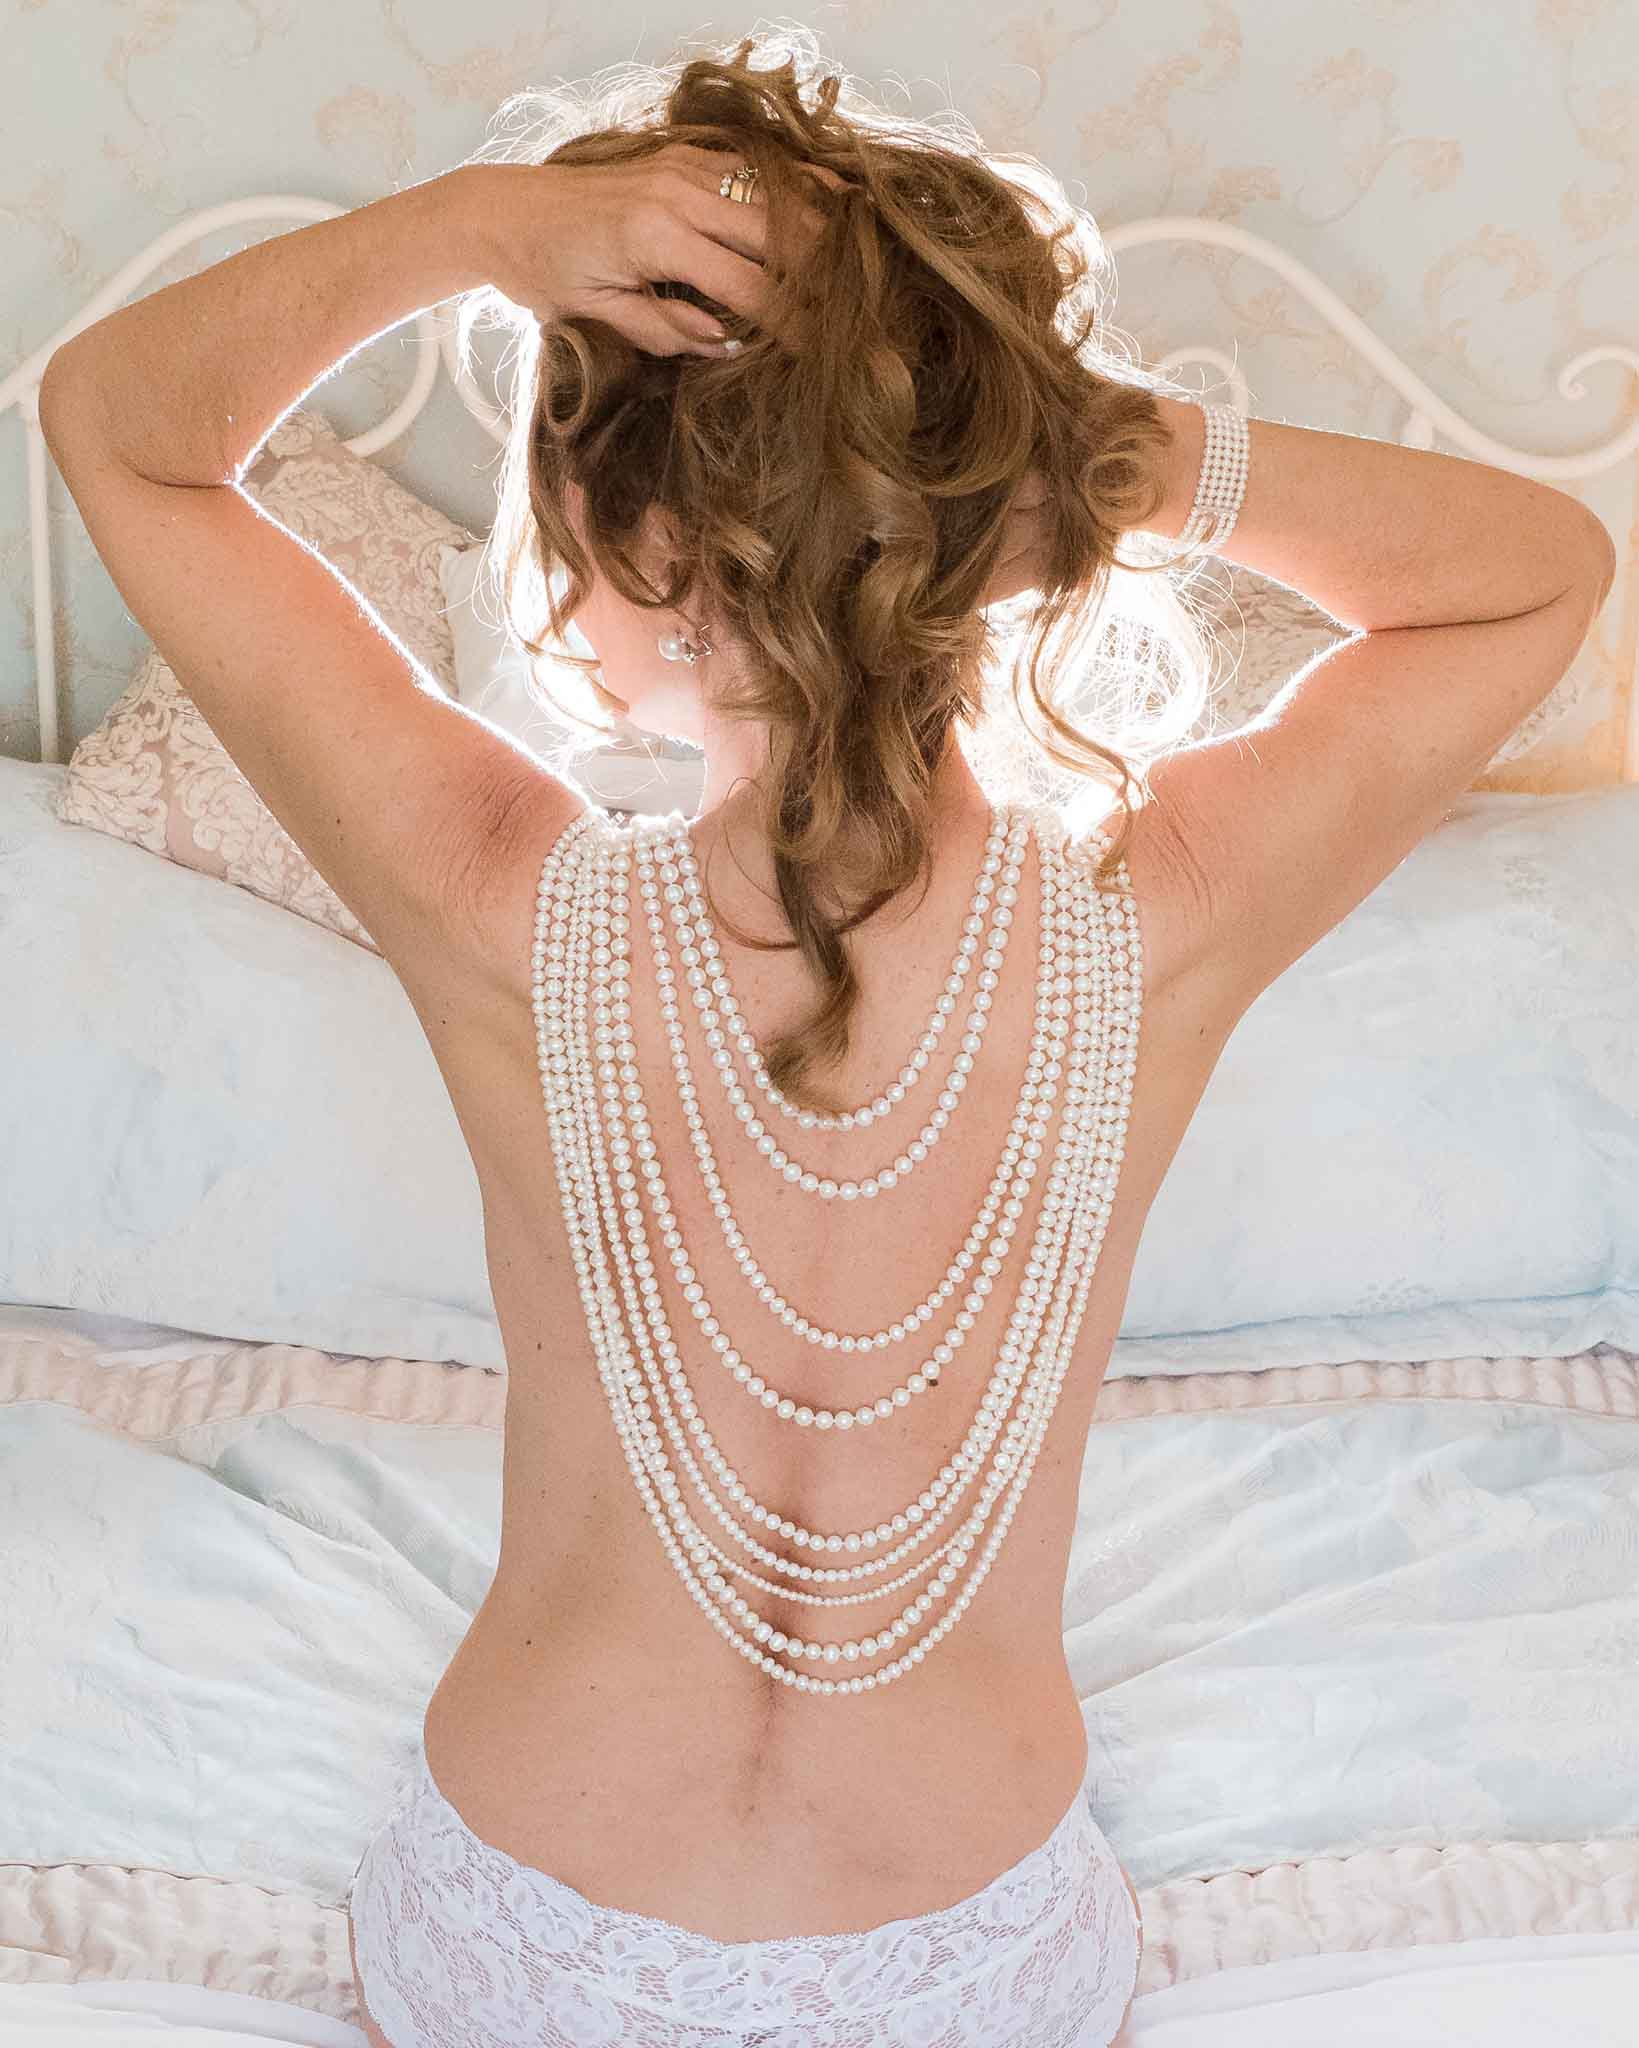 woman wearing pearls for boudoir photoshoot, what to wear at a boudoir shoot